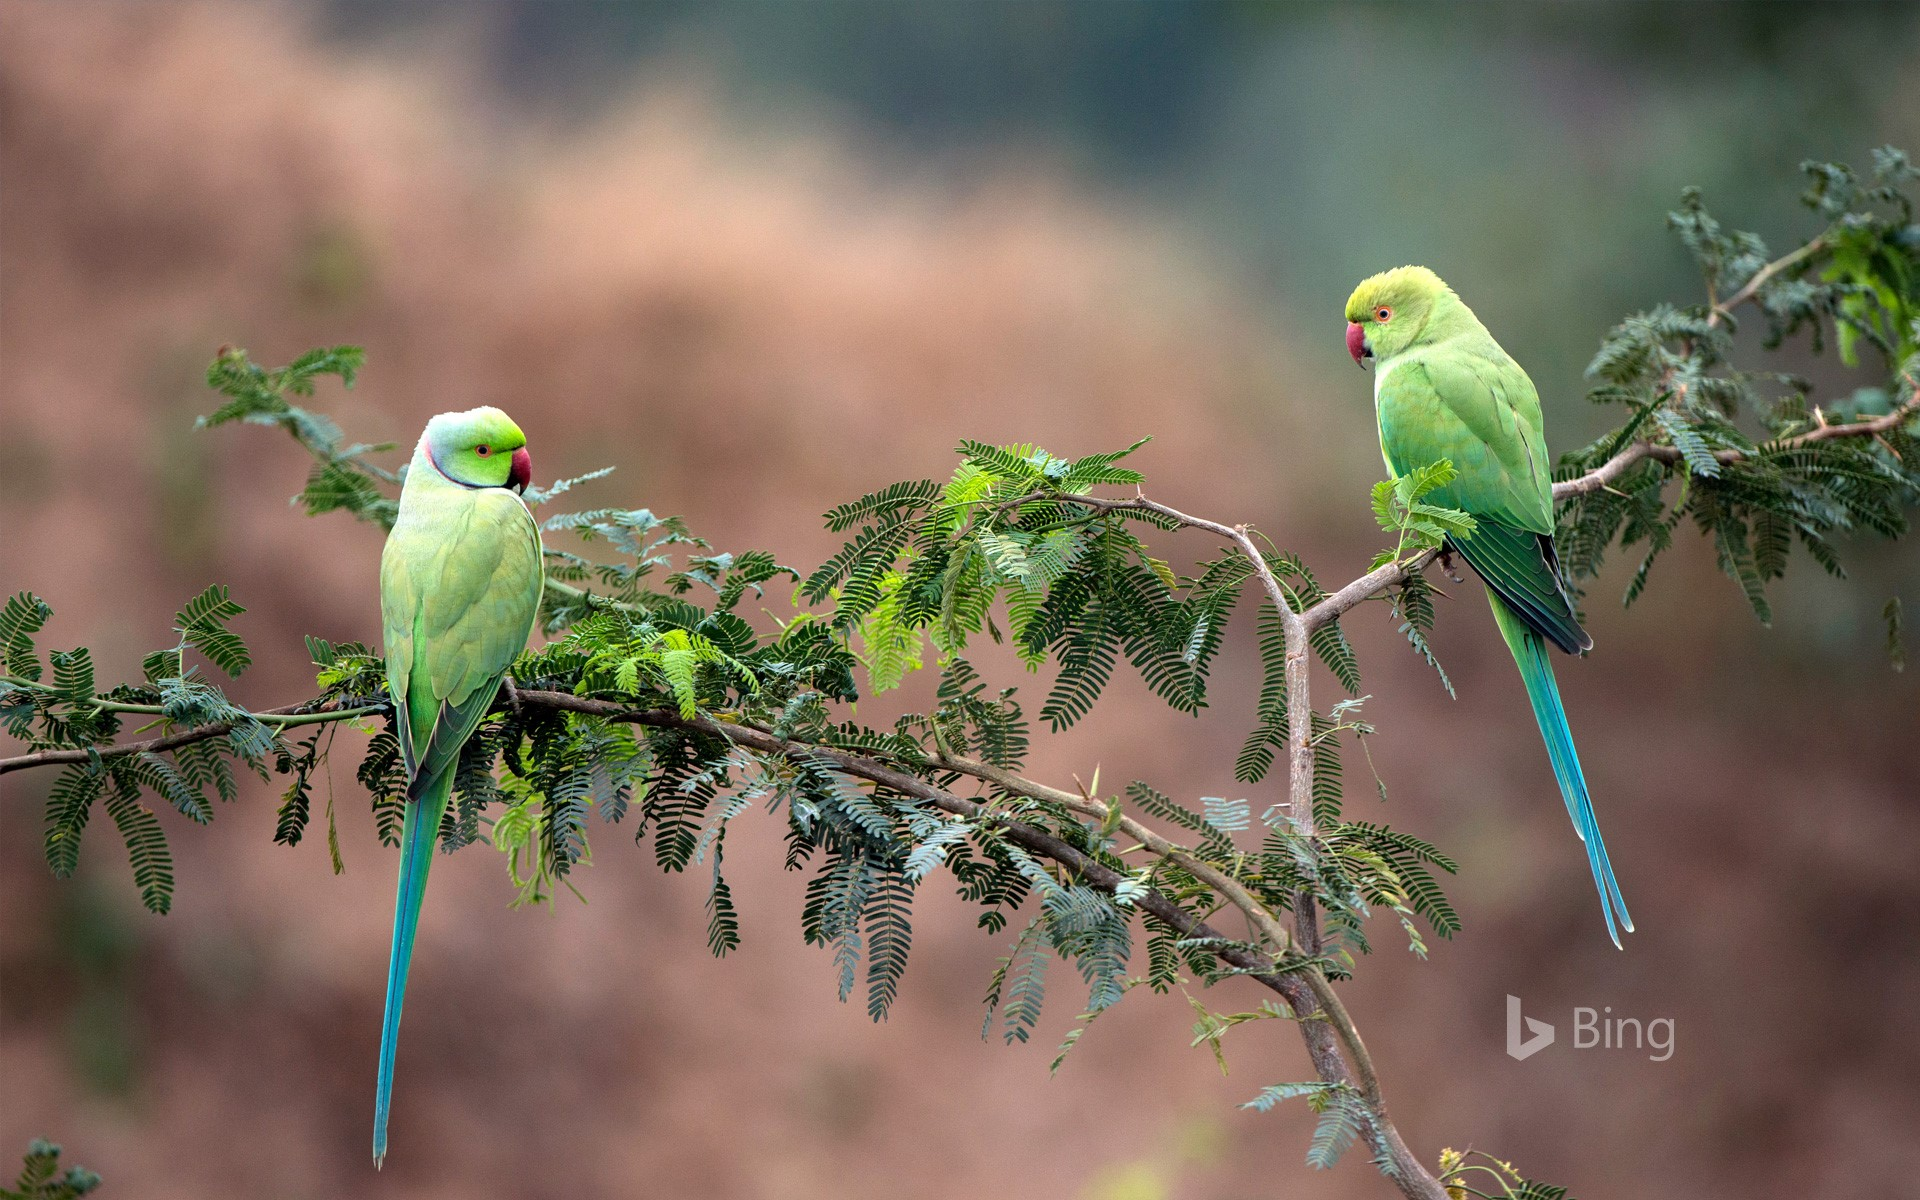 Rose-ringed parakeets in National Chambal Gharial Wildlife Sanctuary, Madhya Pradesh, India